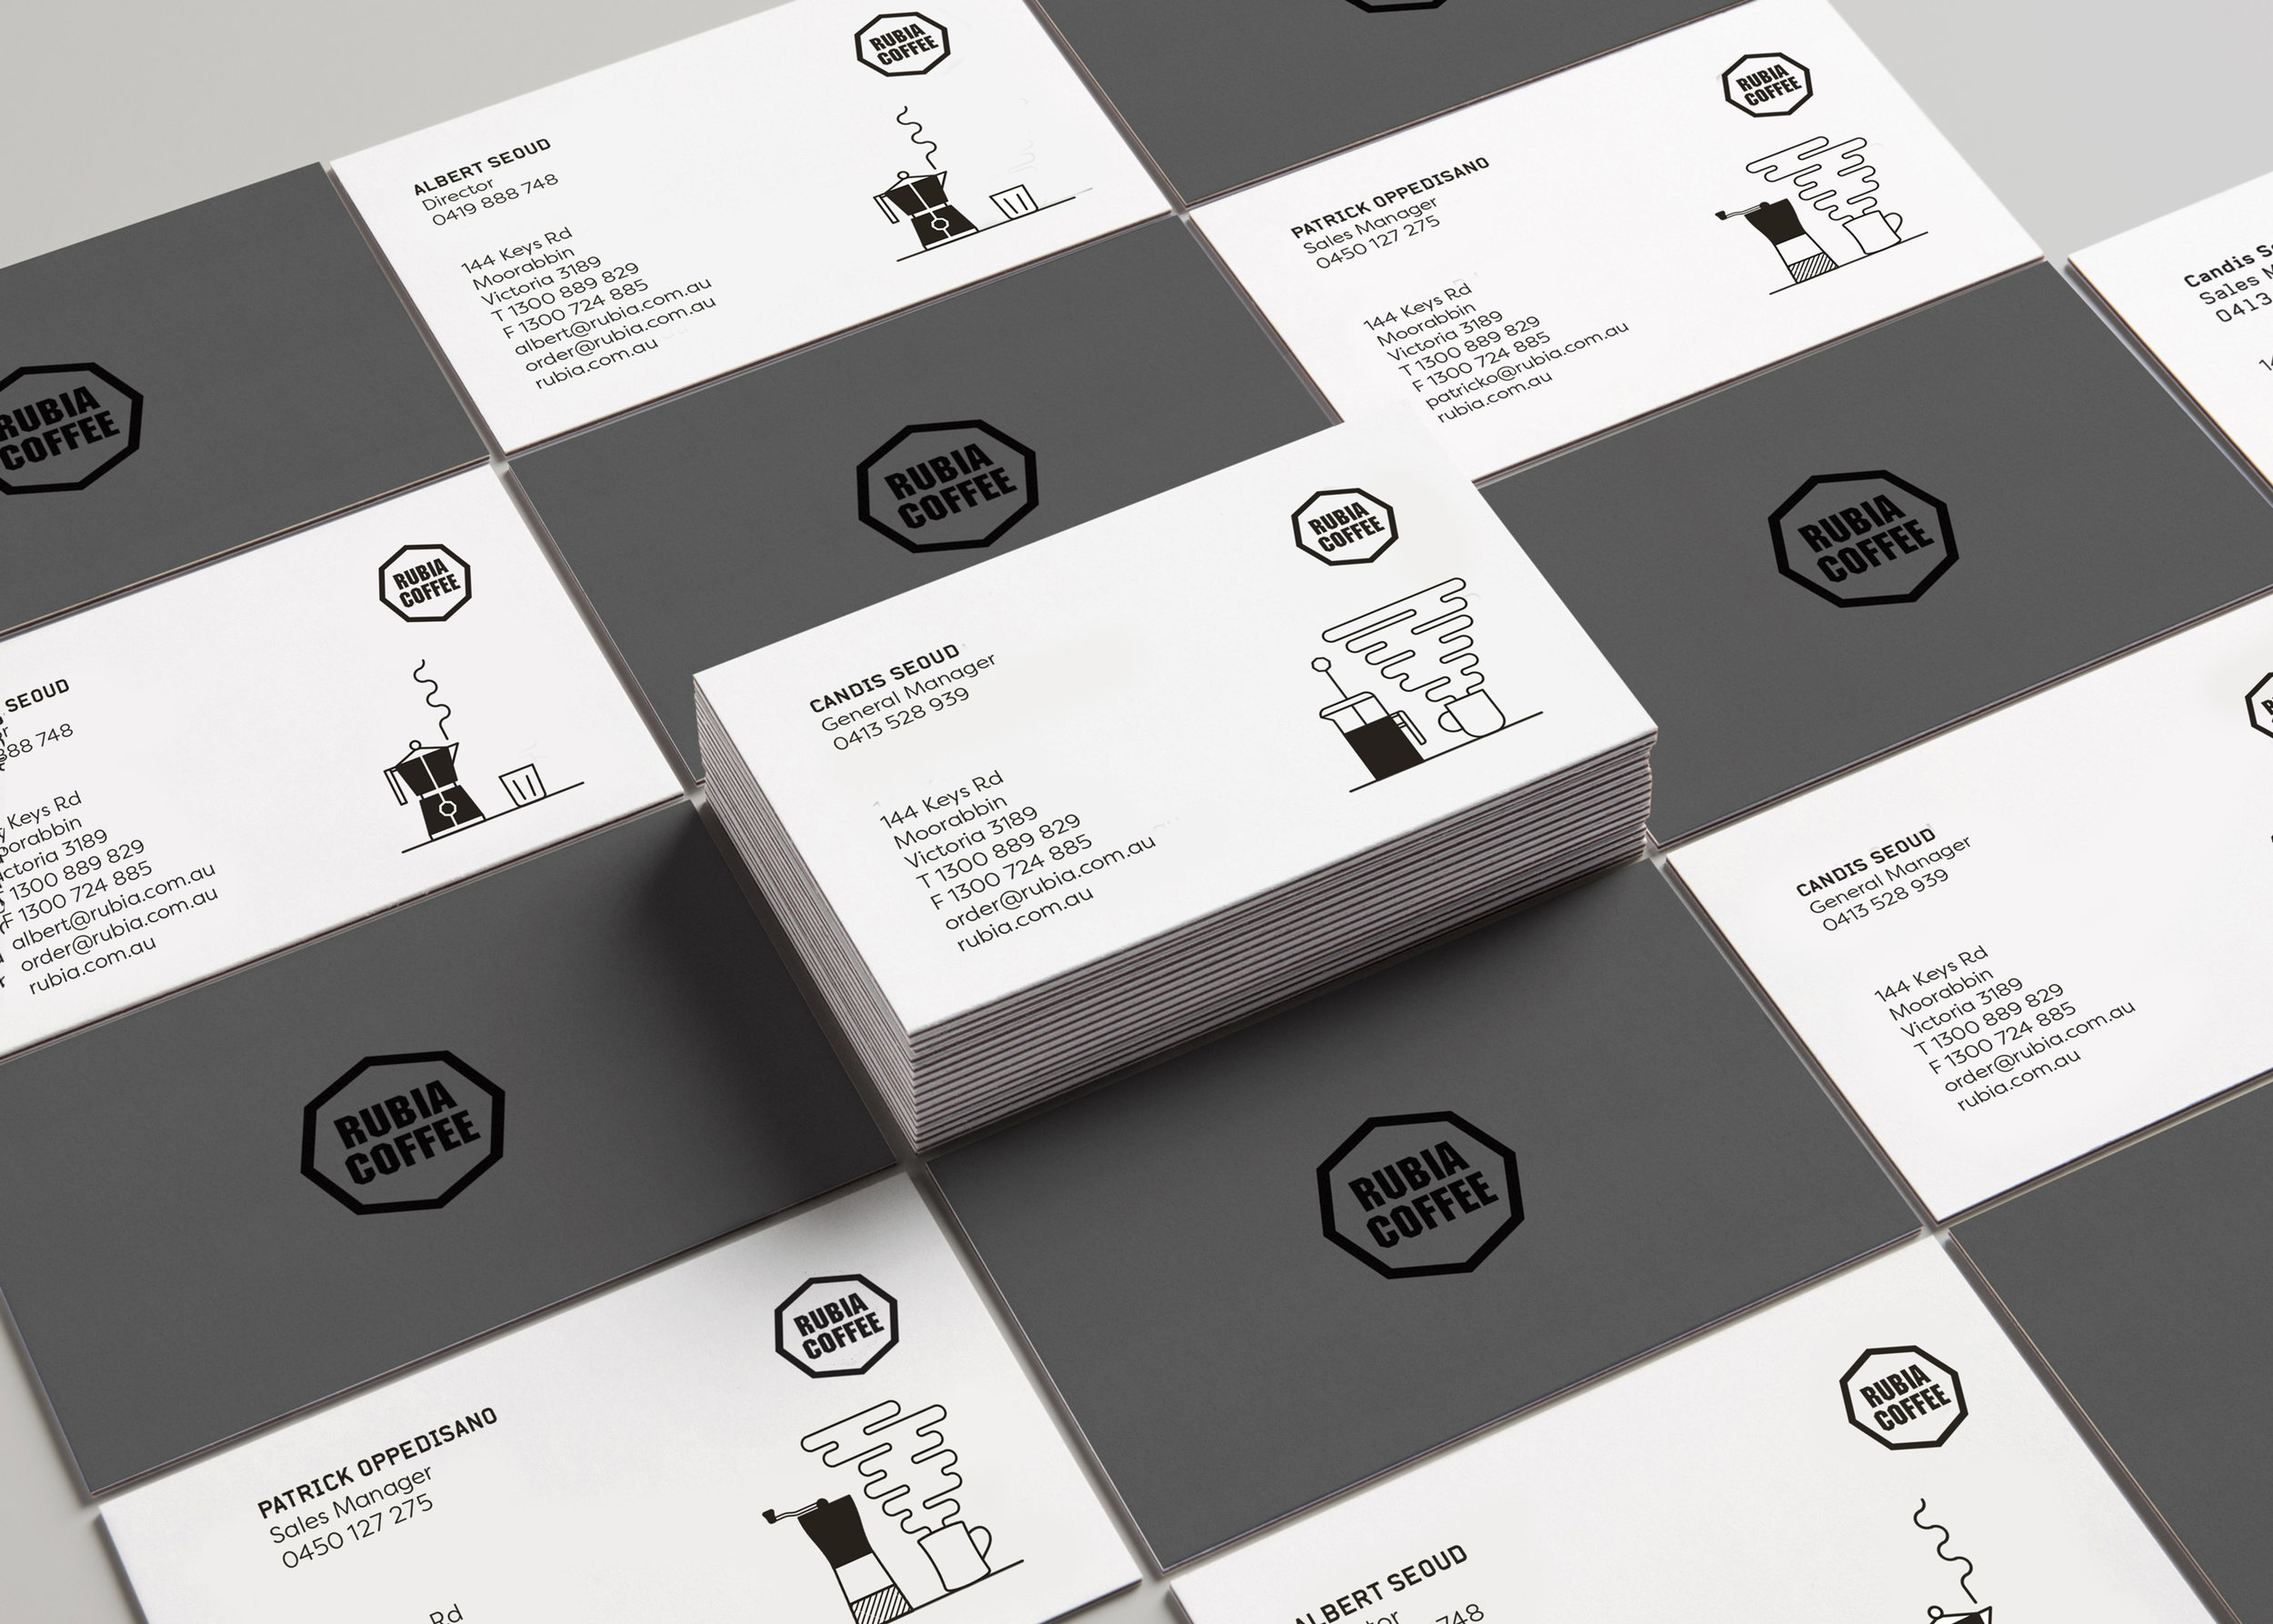 Rubia coffee business cards, logo design, branding design melbourne